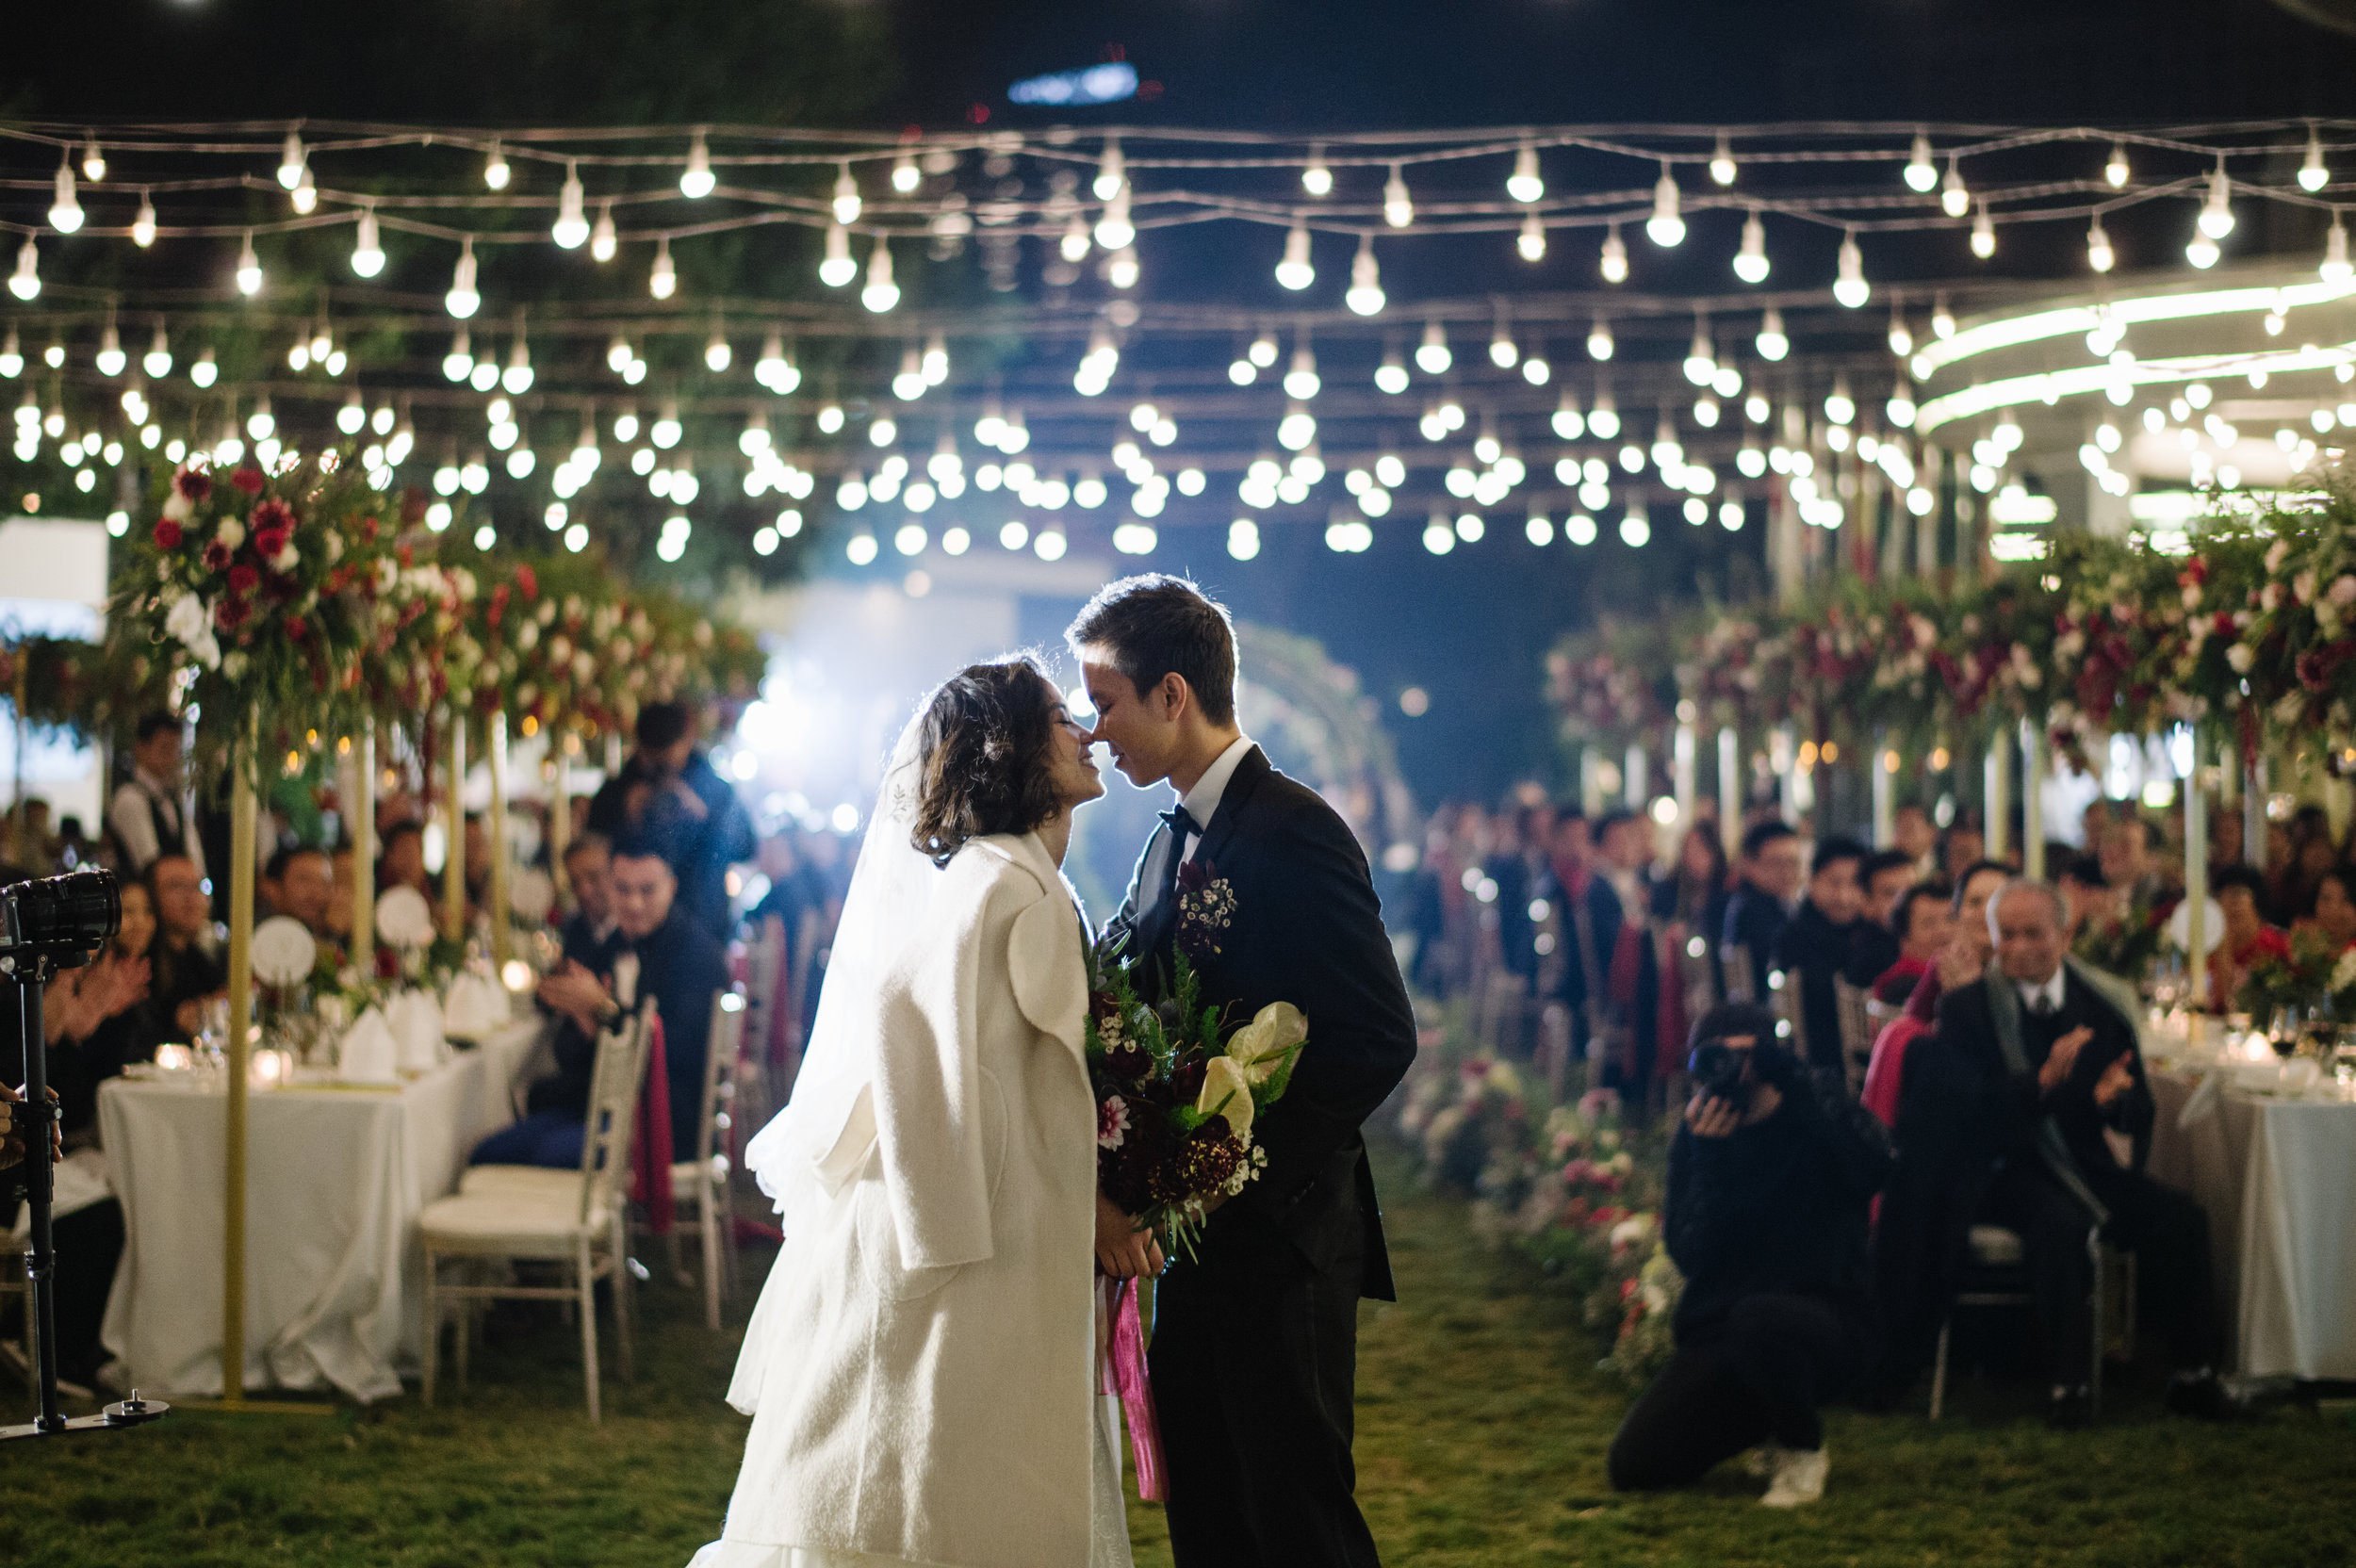 THE MARSALA DREAM - Phuong Anh & Dung Dang's cozy nuptial on the coldest day of the year